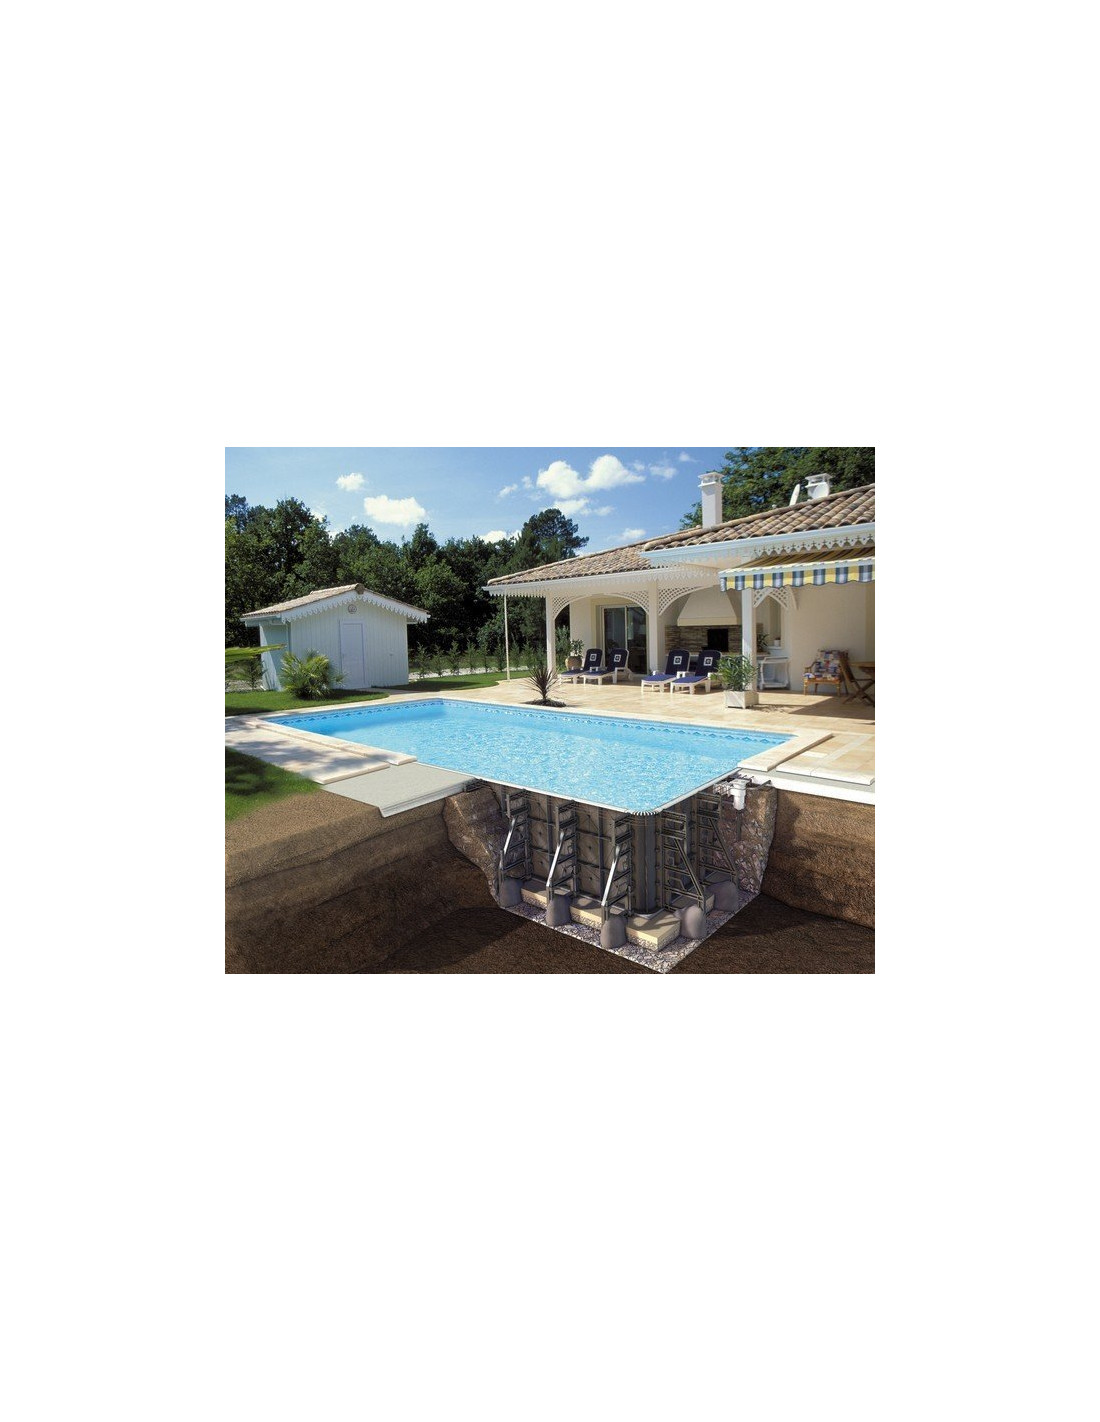 Kit piscine enterr e ppp rectangulaire 6 x 3 x 1 25 m for Piscine enterree en kit